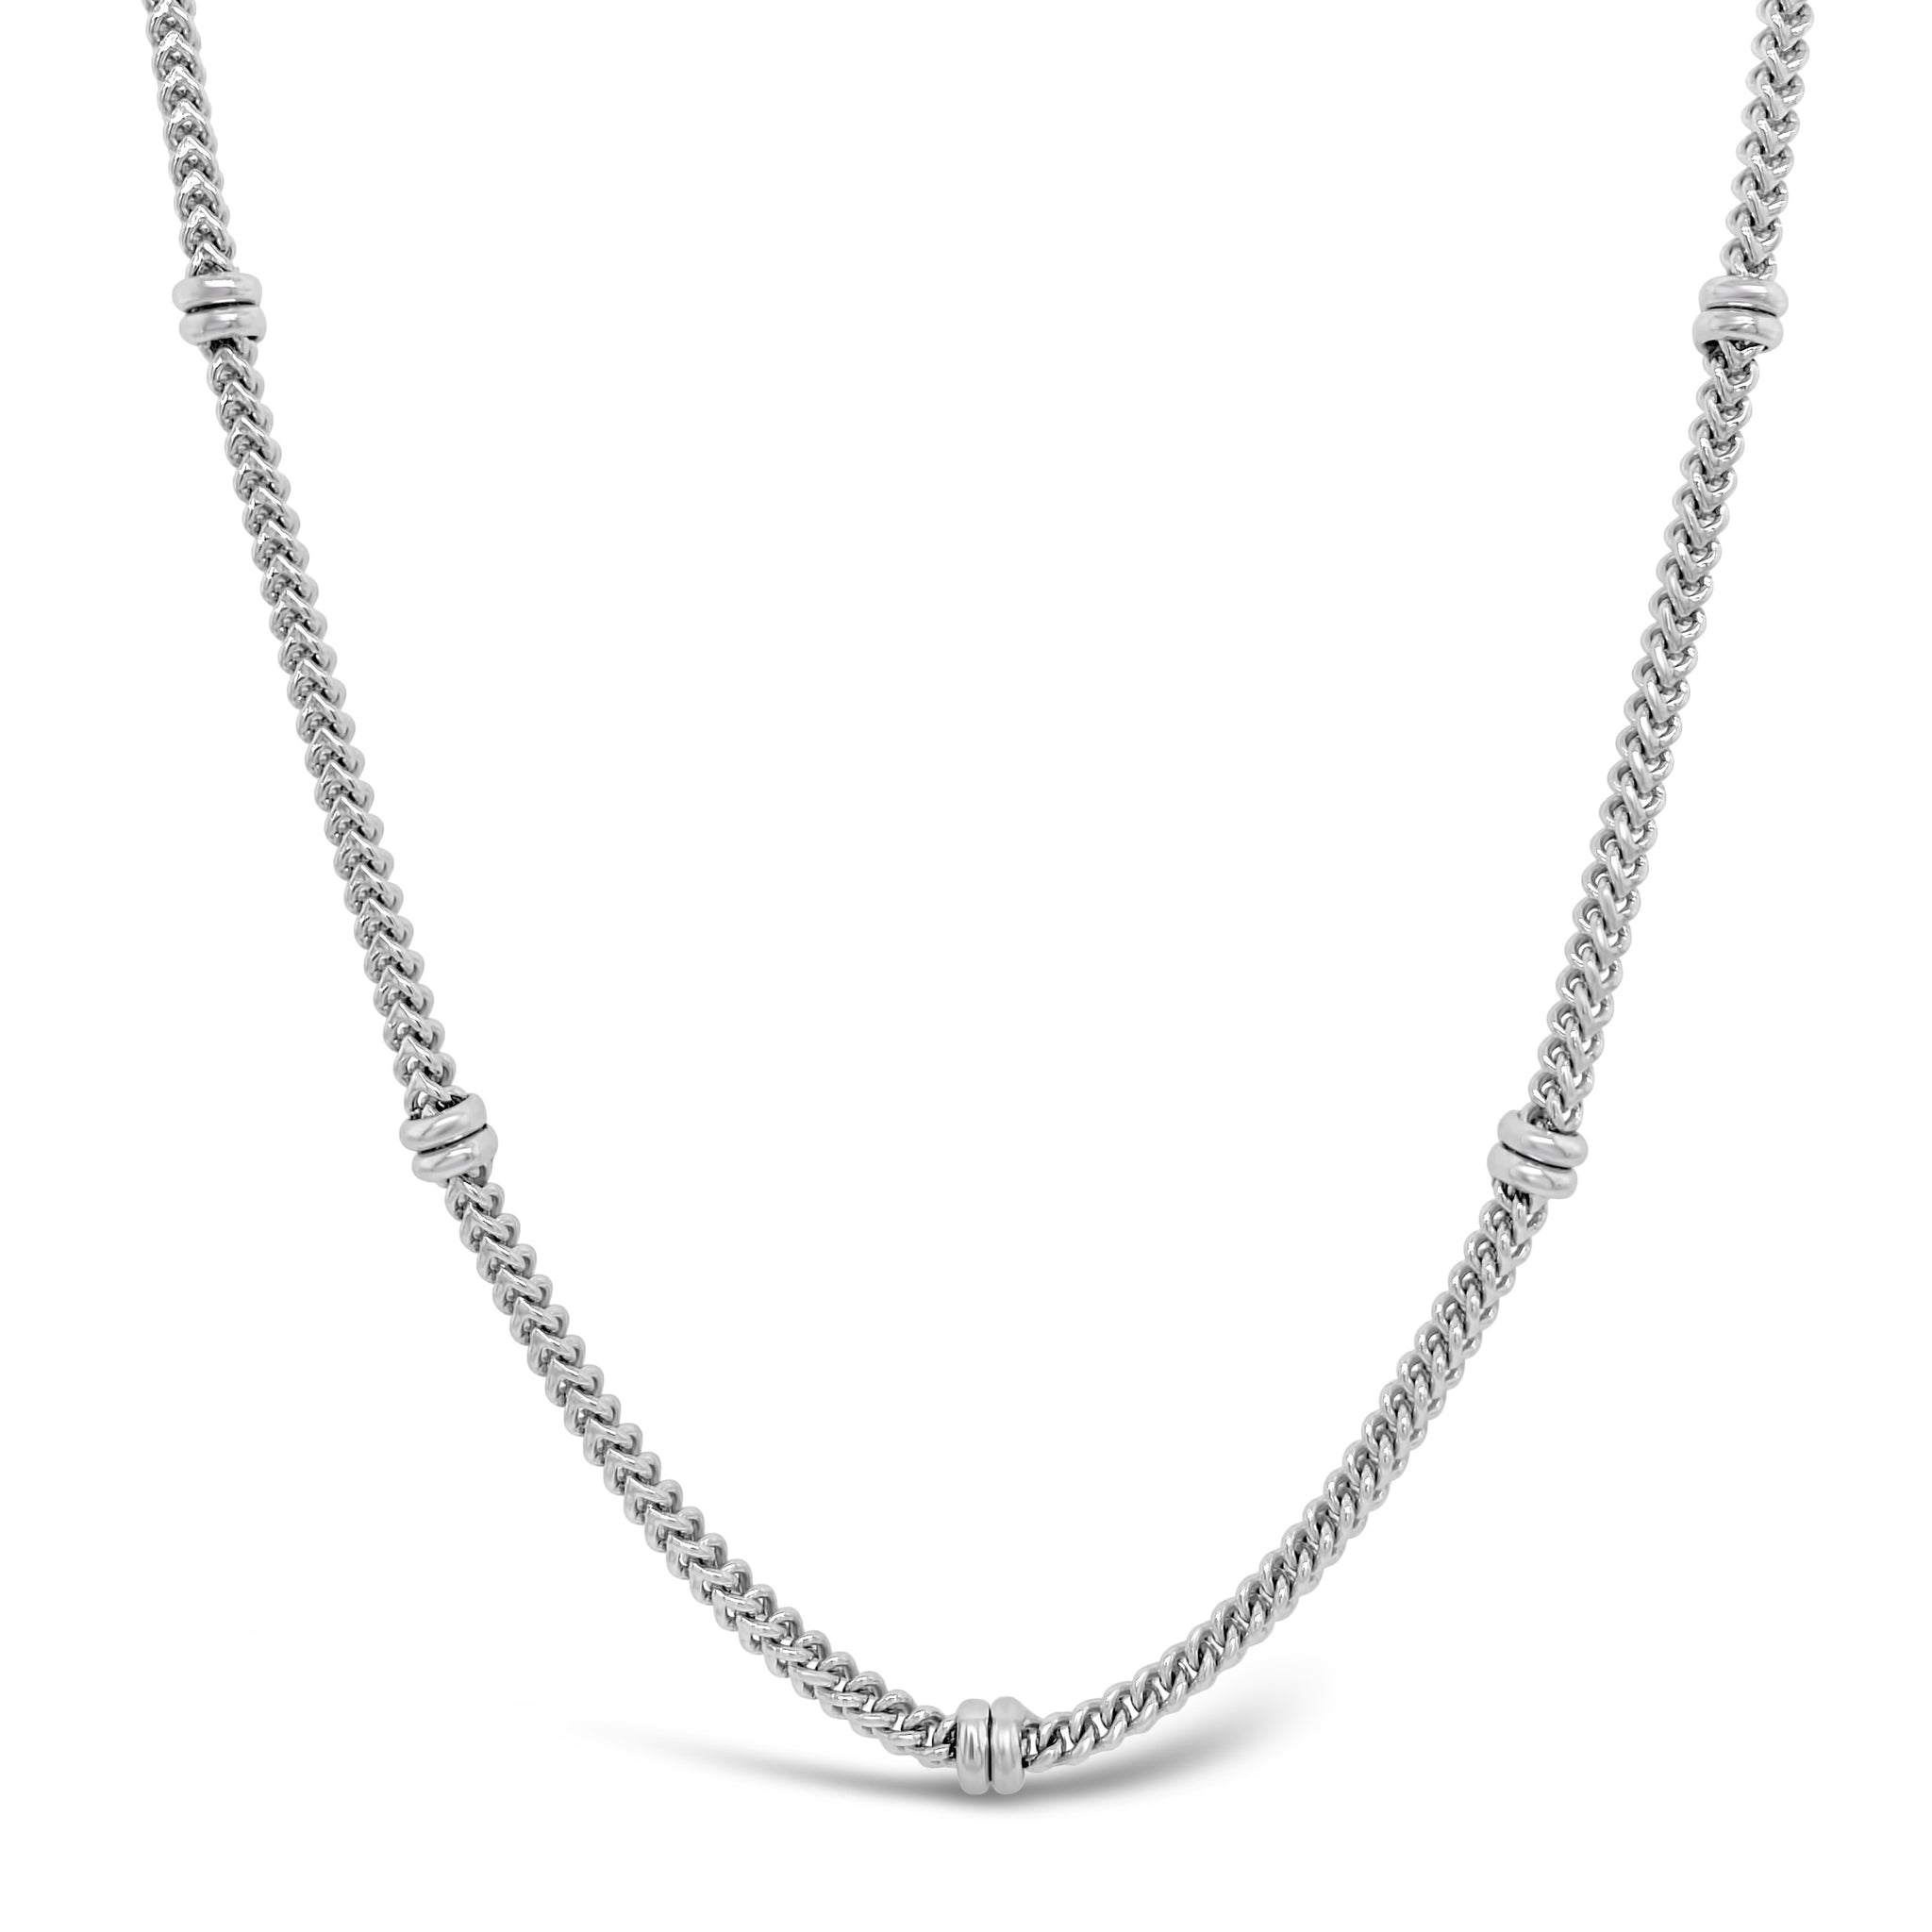 Square Link & Rondelle Chain Necklace